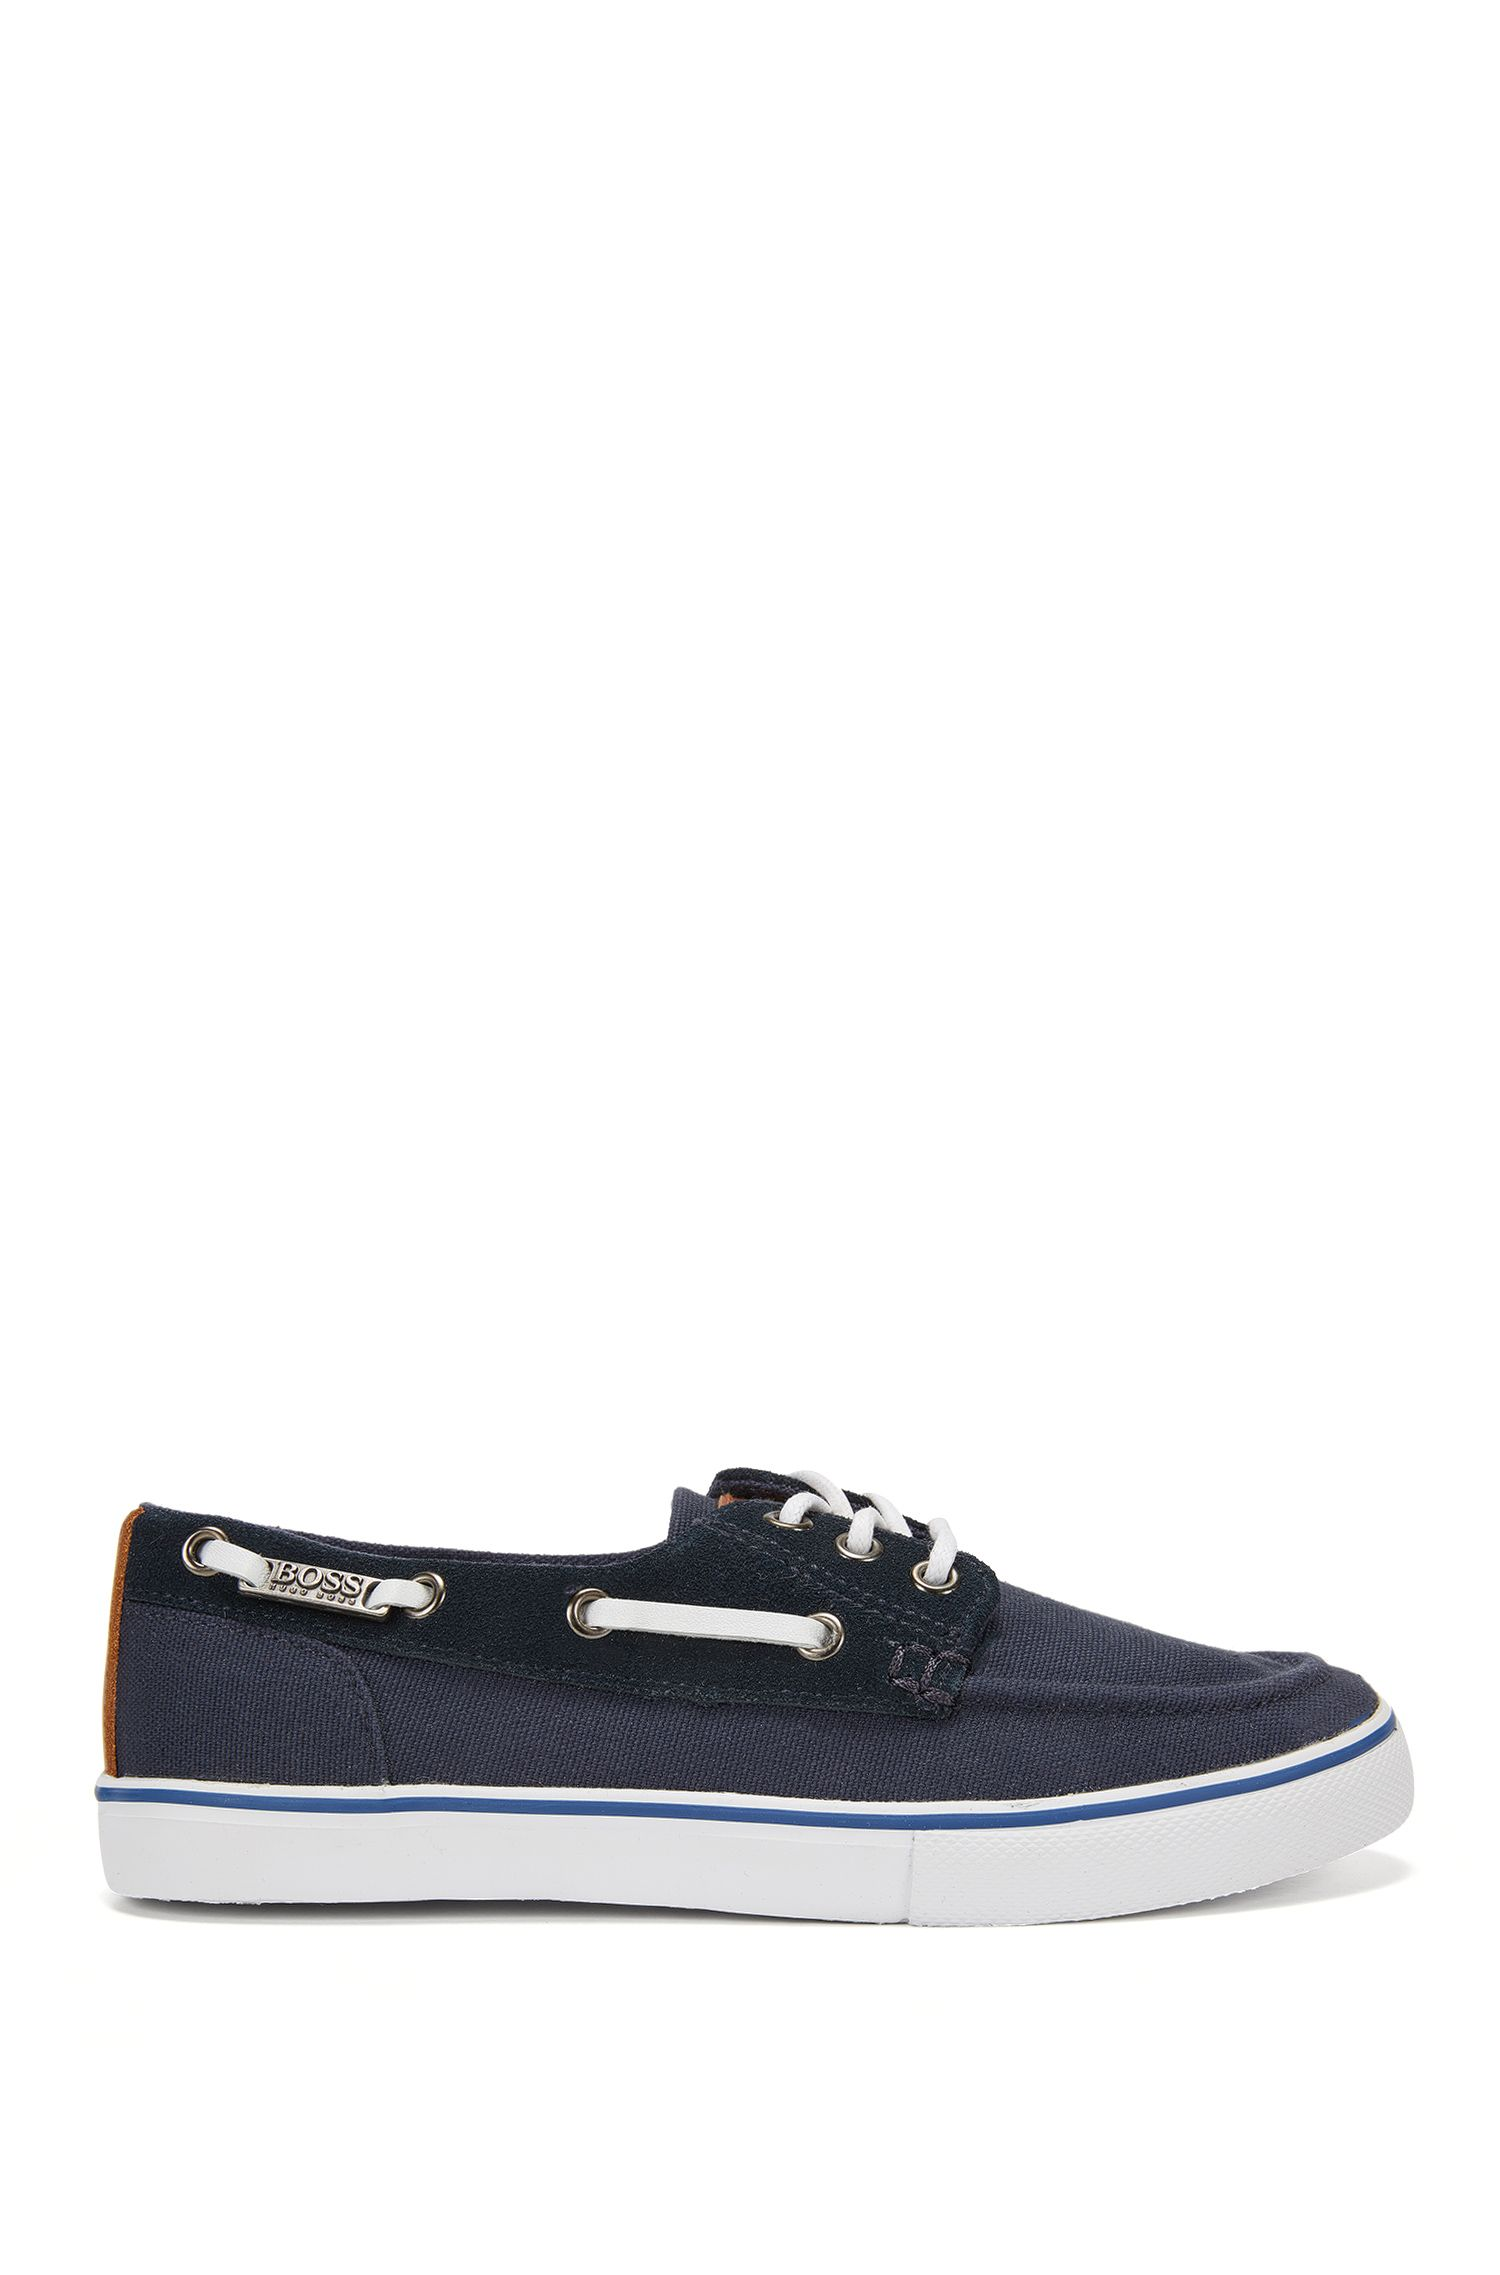 Kids' boat shoes with leather trim: 'J29132'